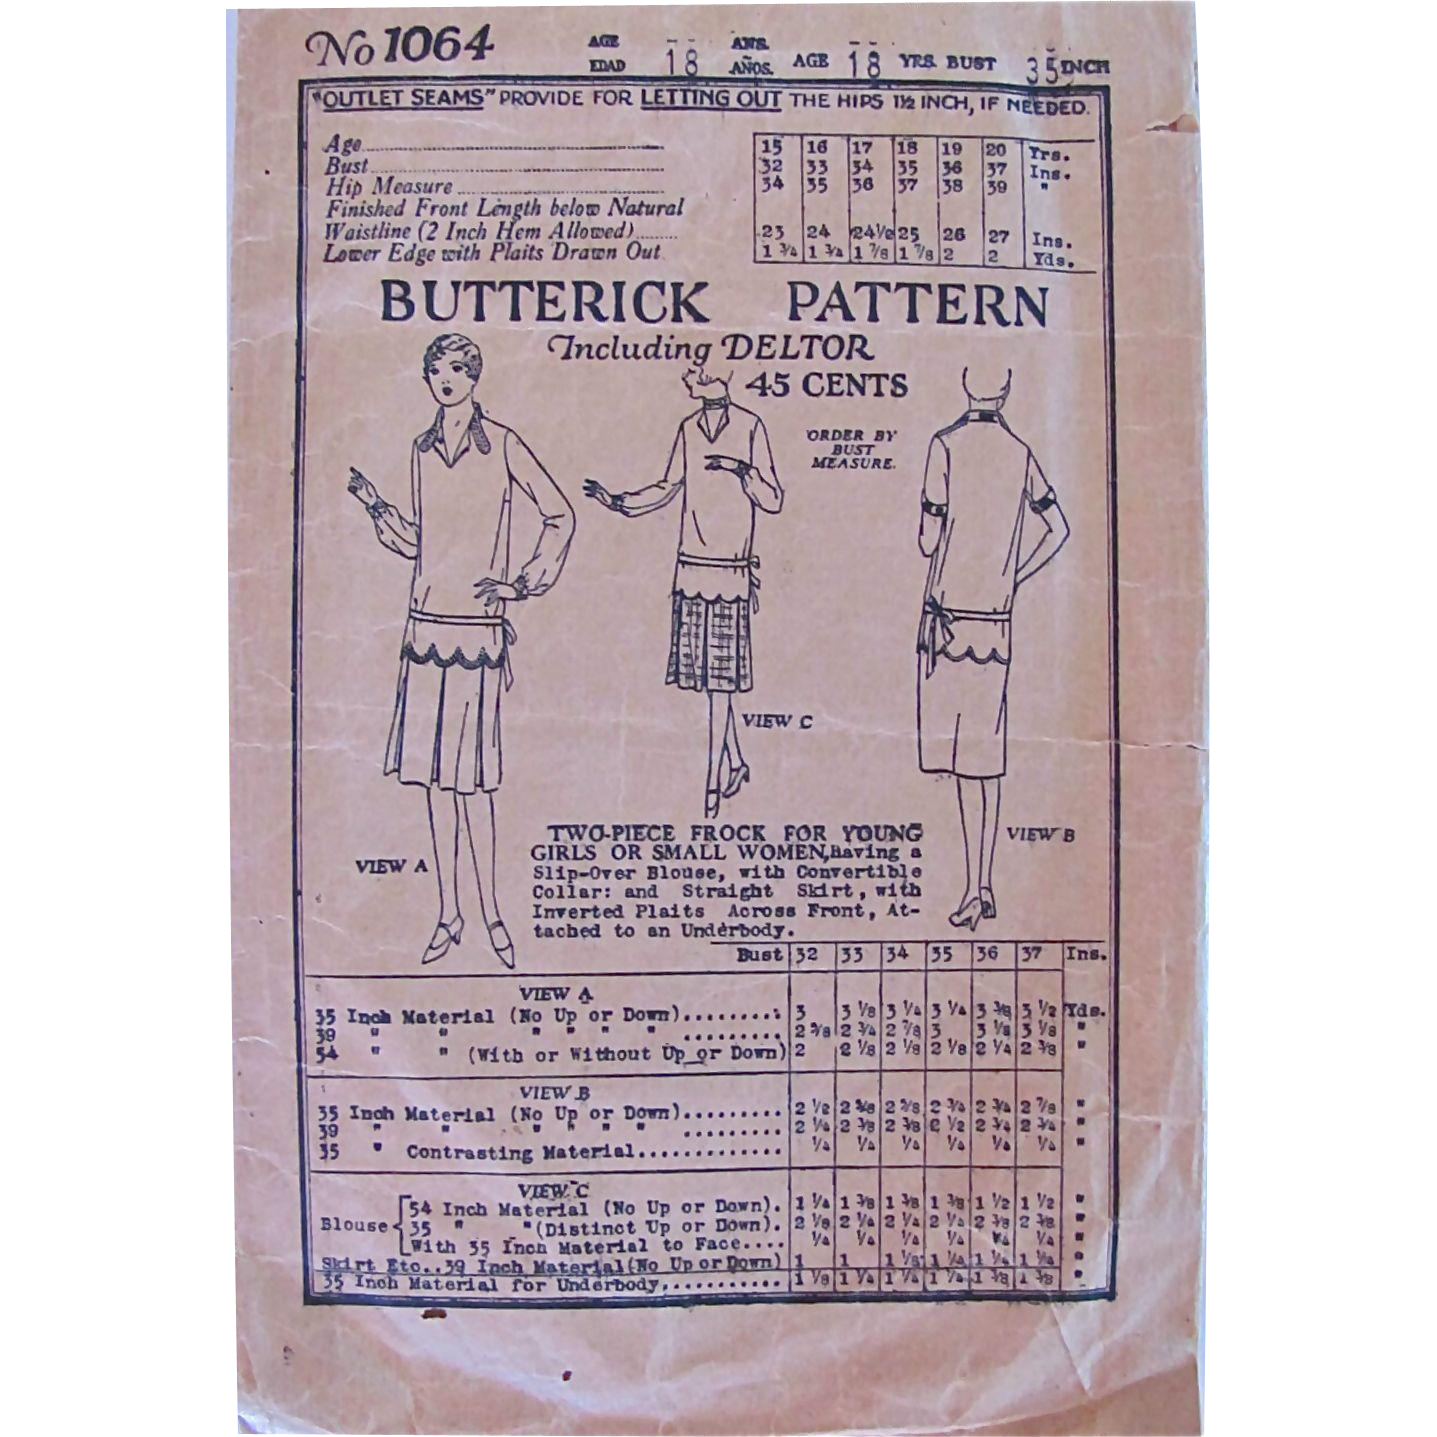 Two Piece Flapper Dress, Butterick Pattern 1064, Bust 35 Inches, Vintage 1919, Complete